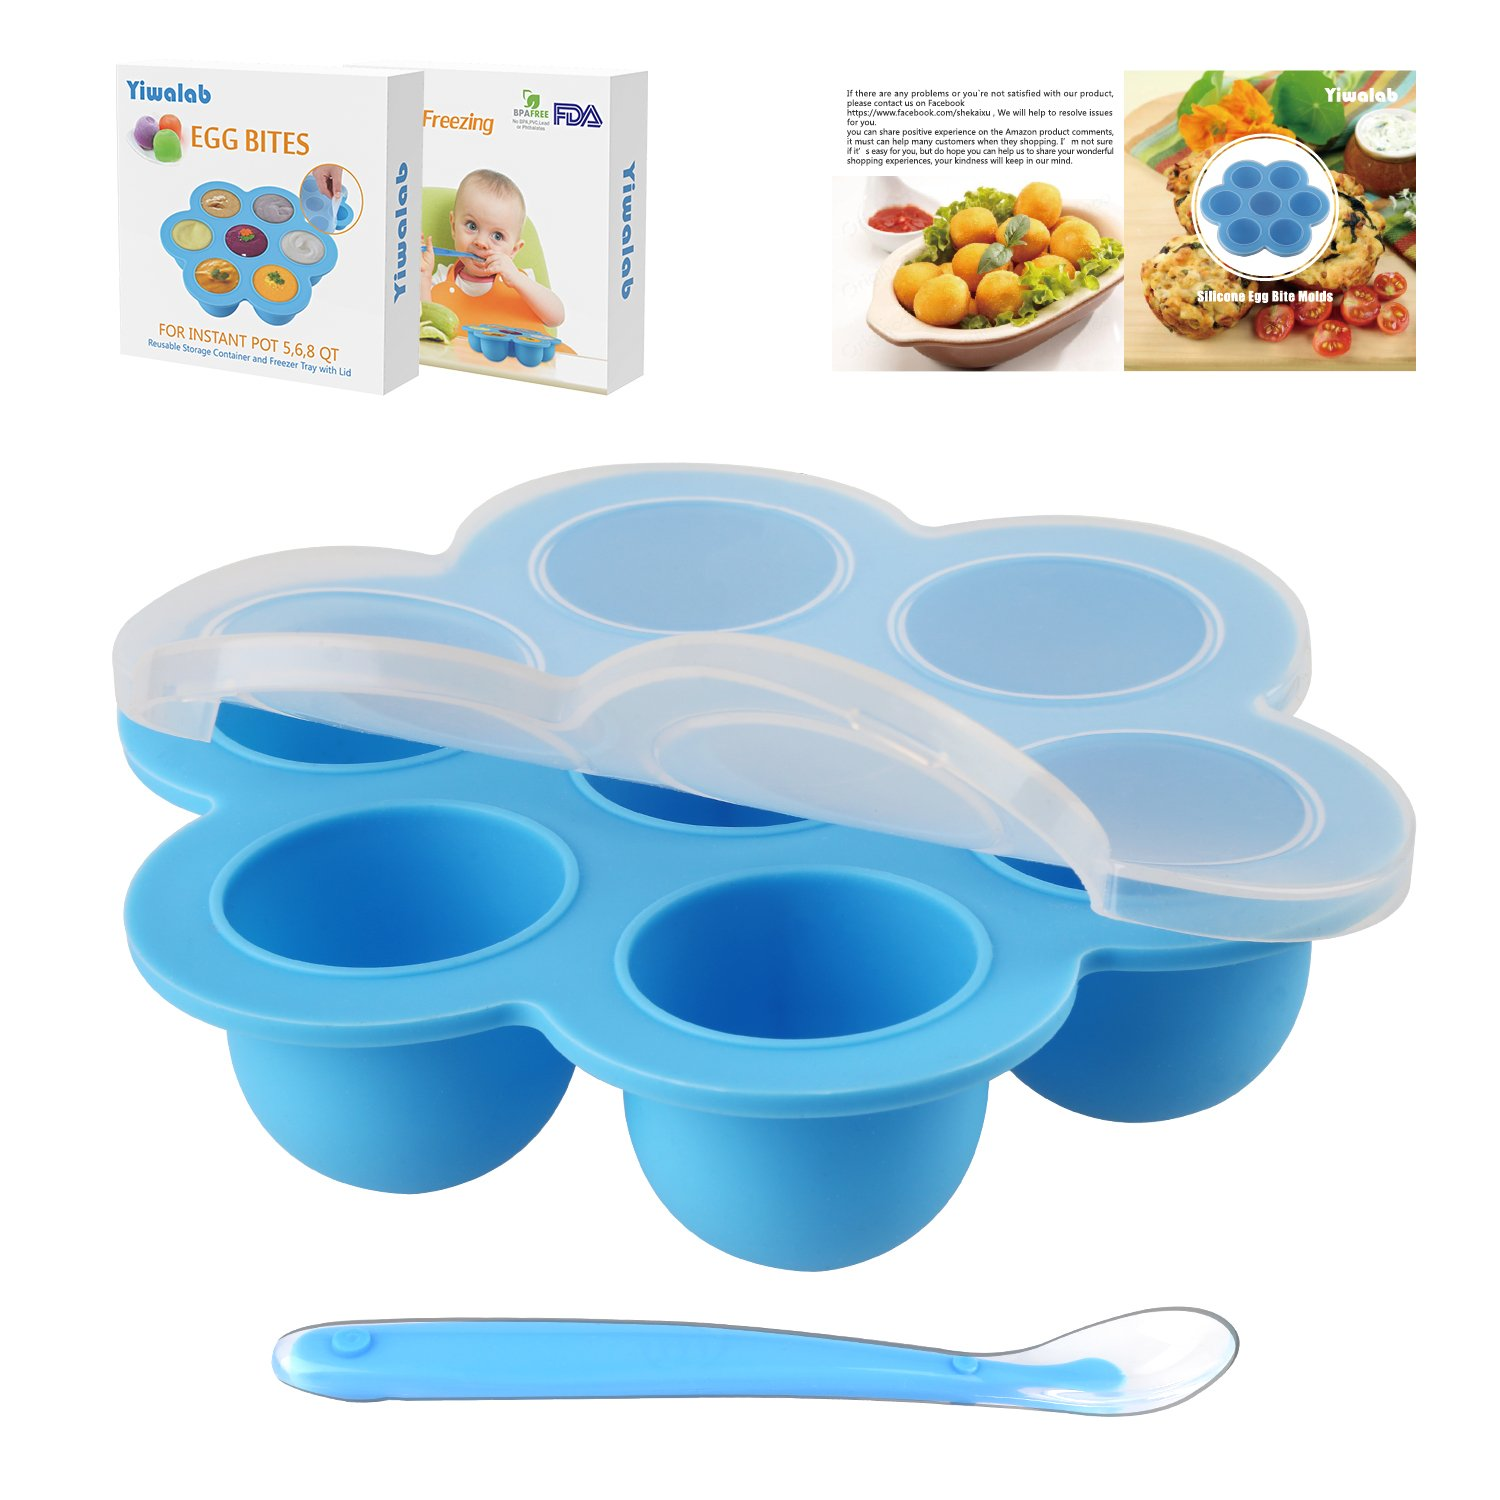 Yiwalab Silicone Egg Bite Molds Baby Food Storage Containers